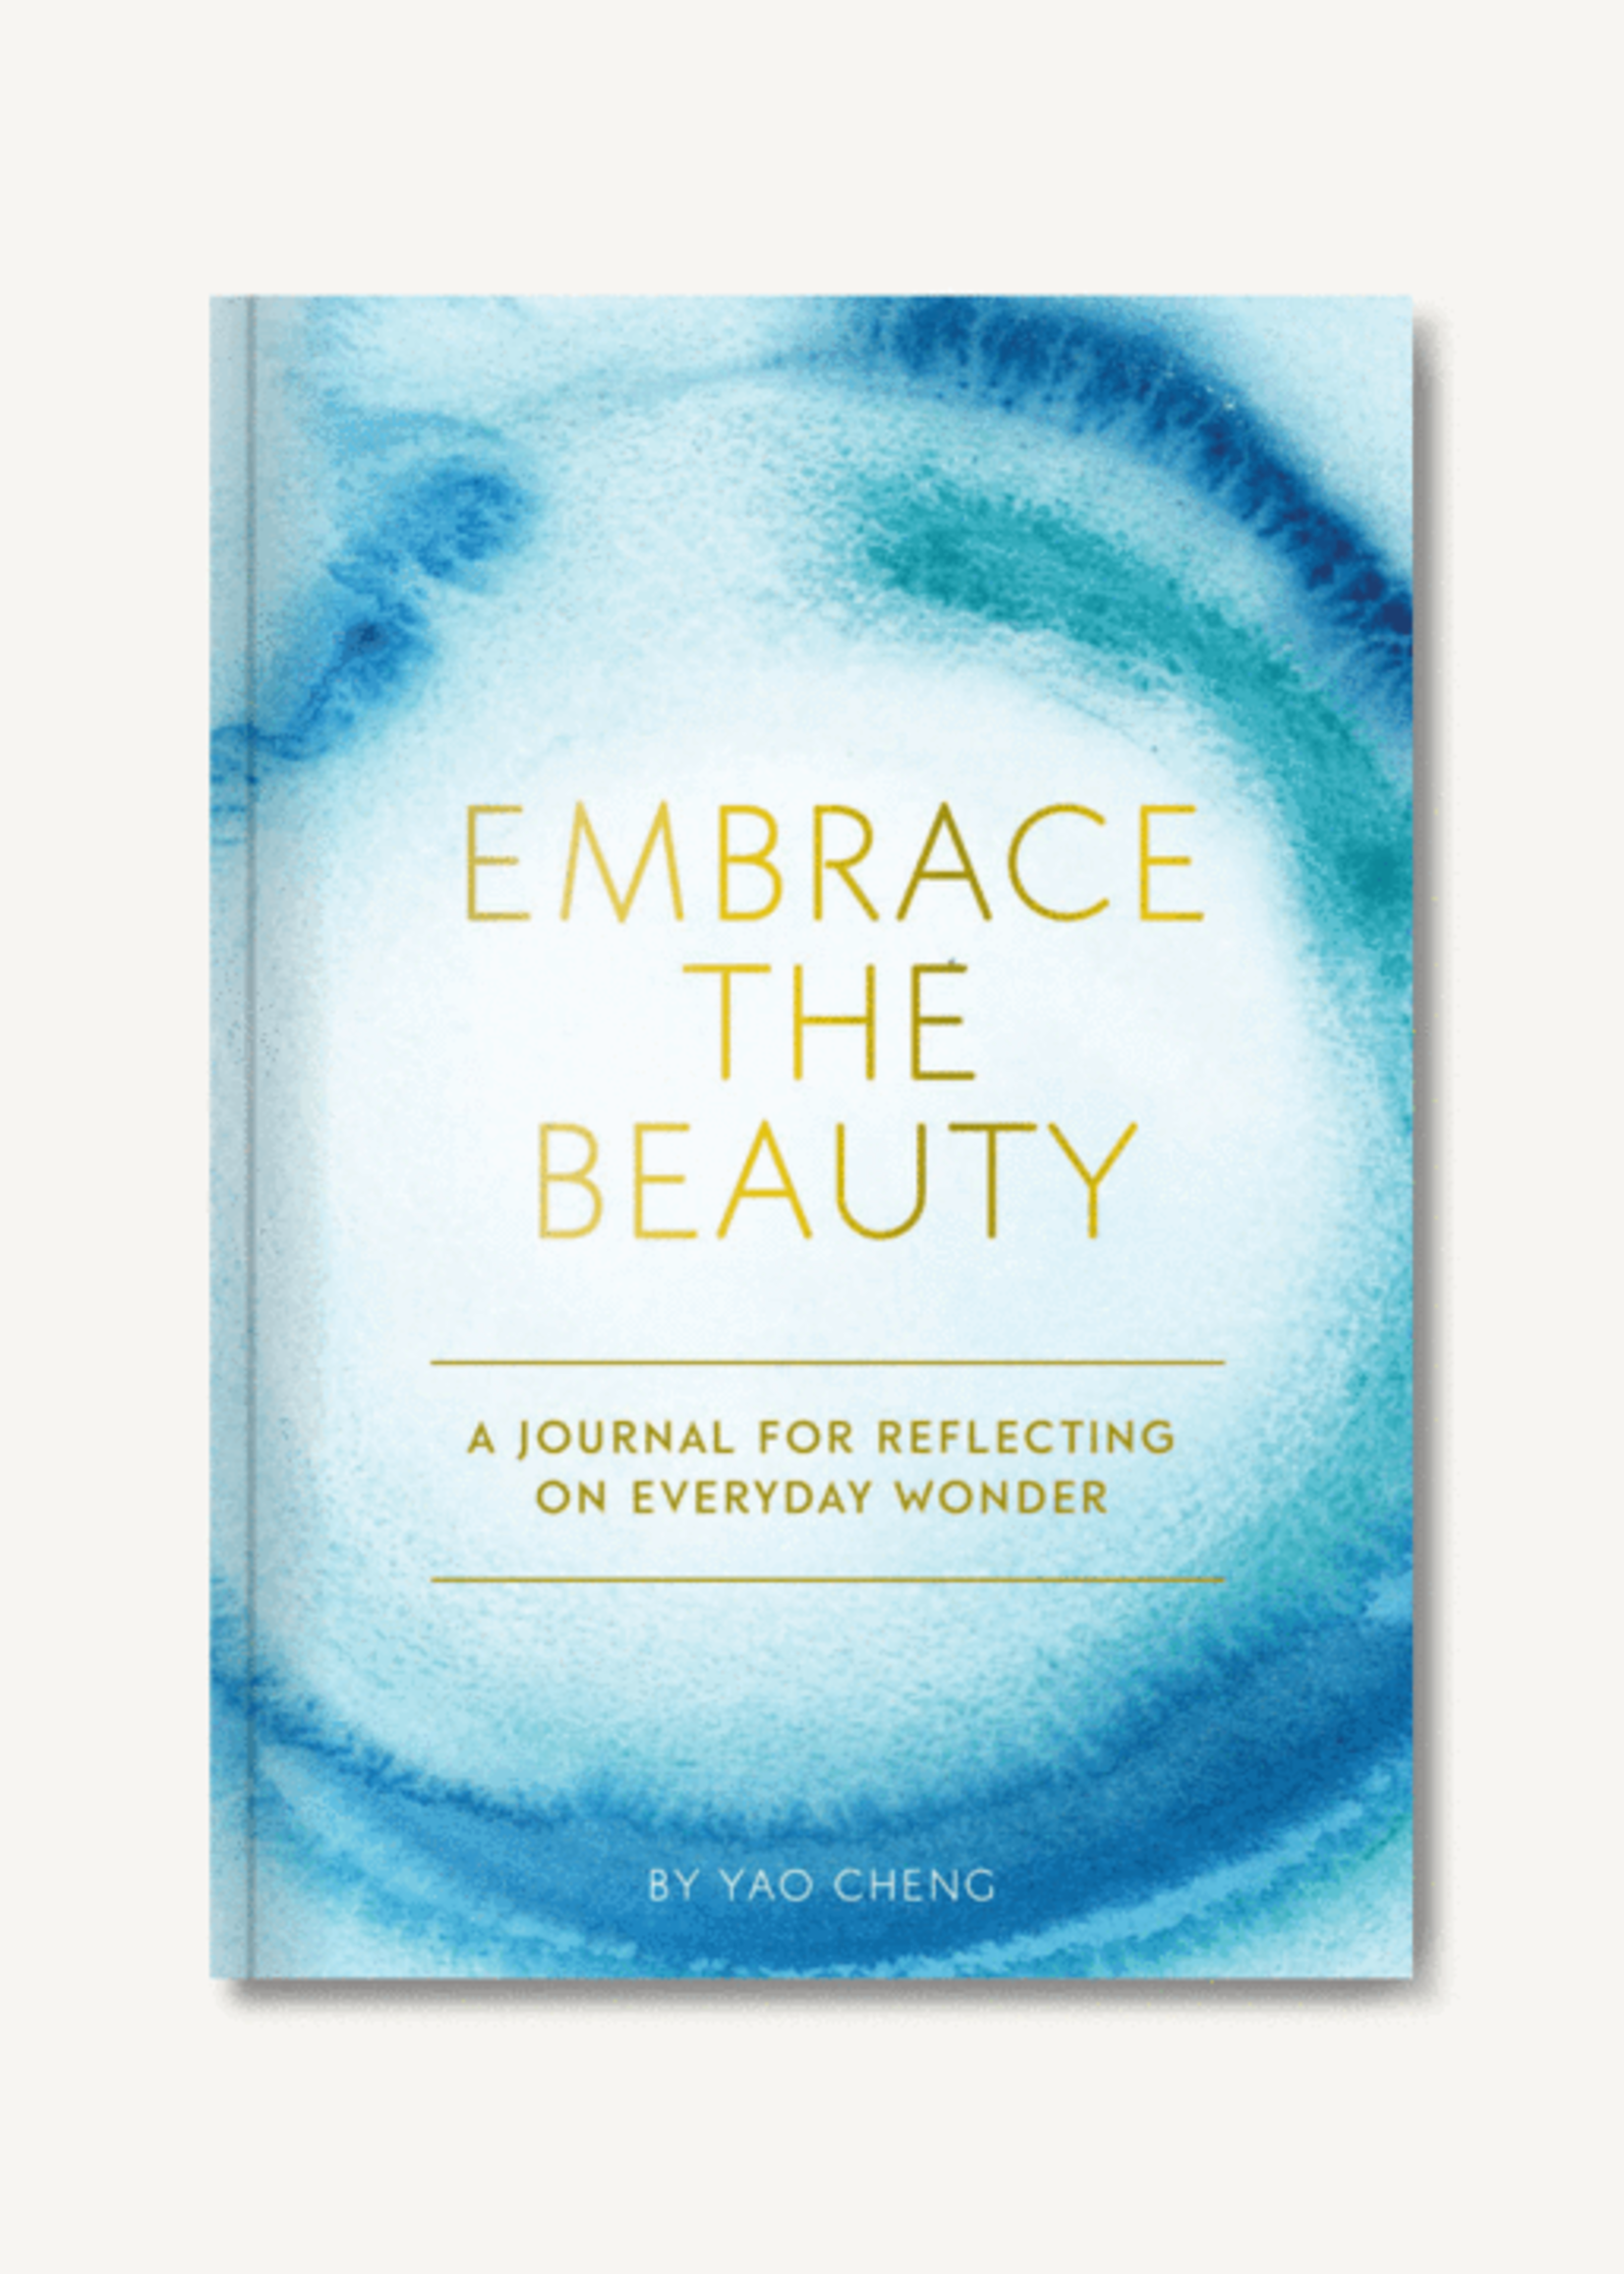 Embrace the Beauty Journal A Journal for Reflecting on Everyday Wonder by Yao Cheng